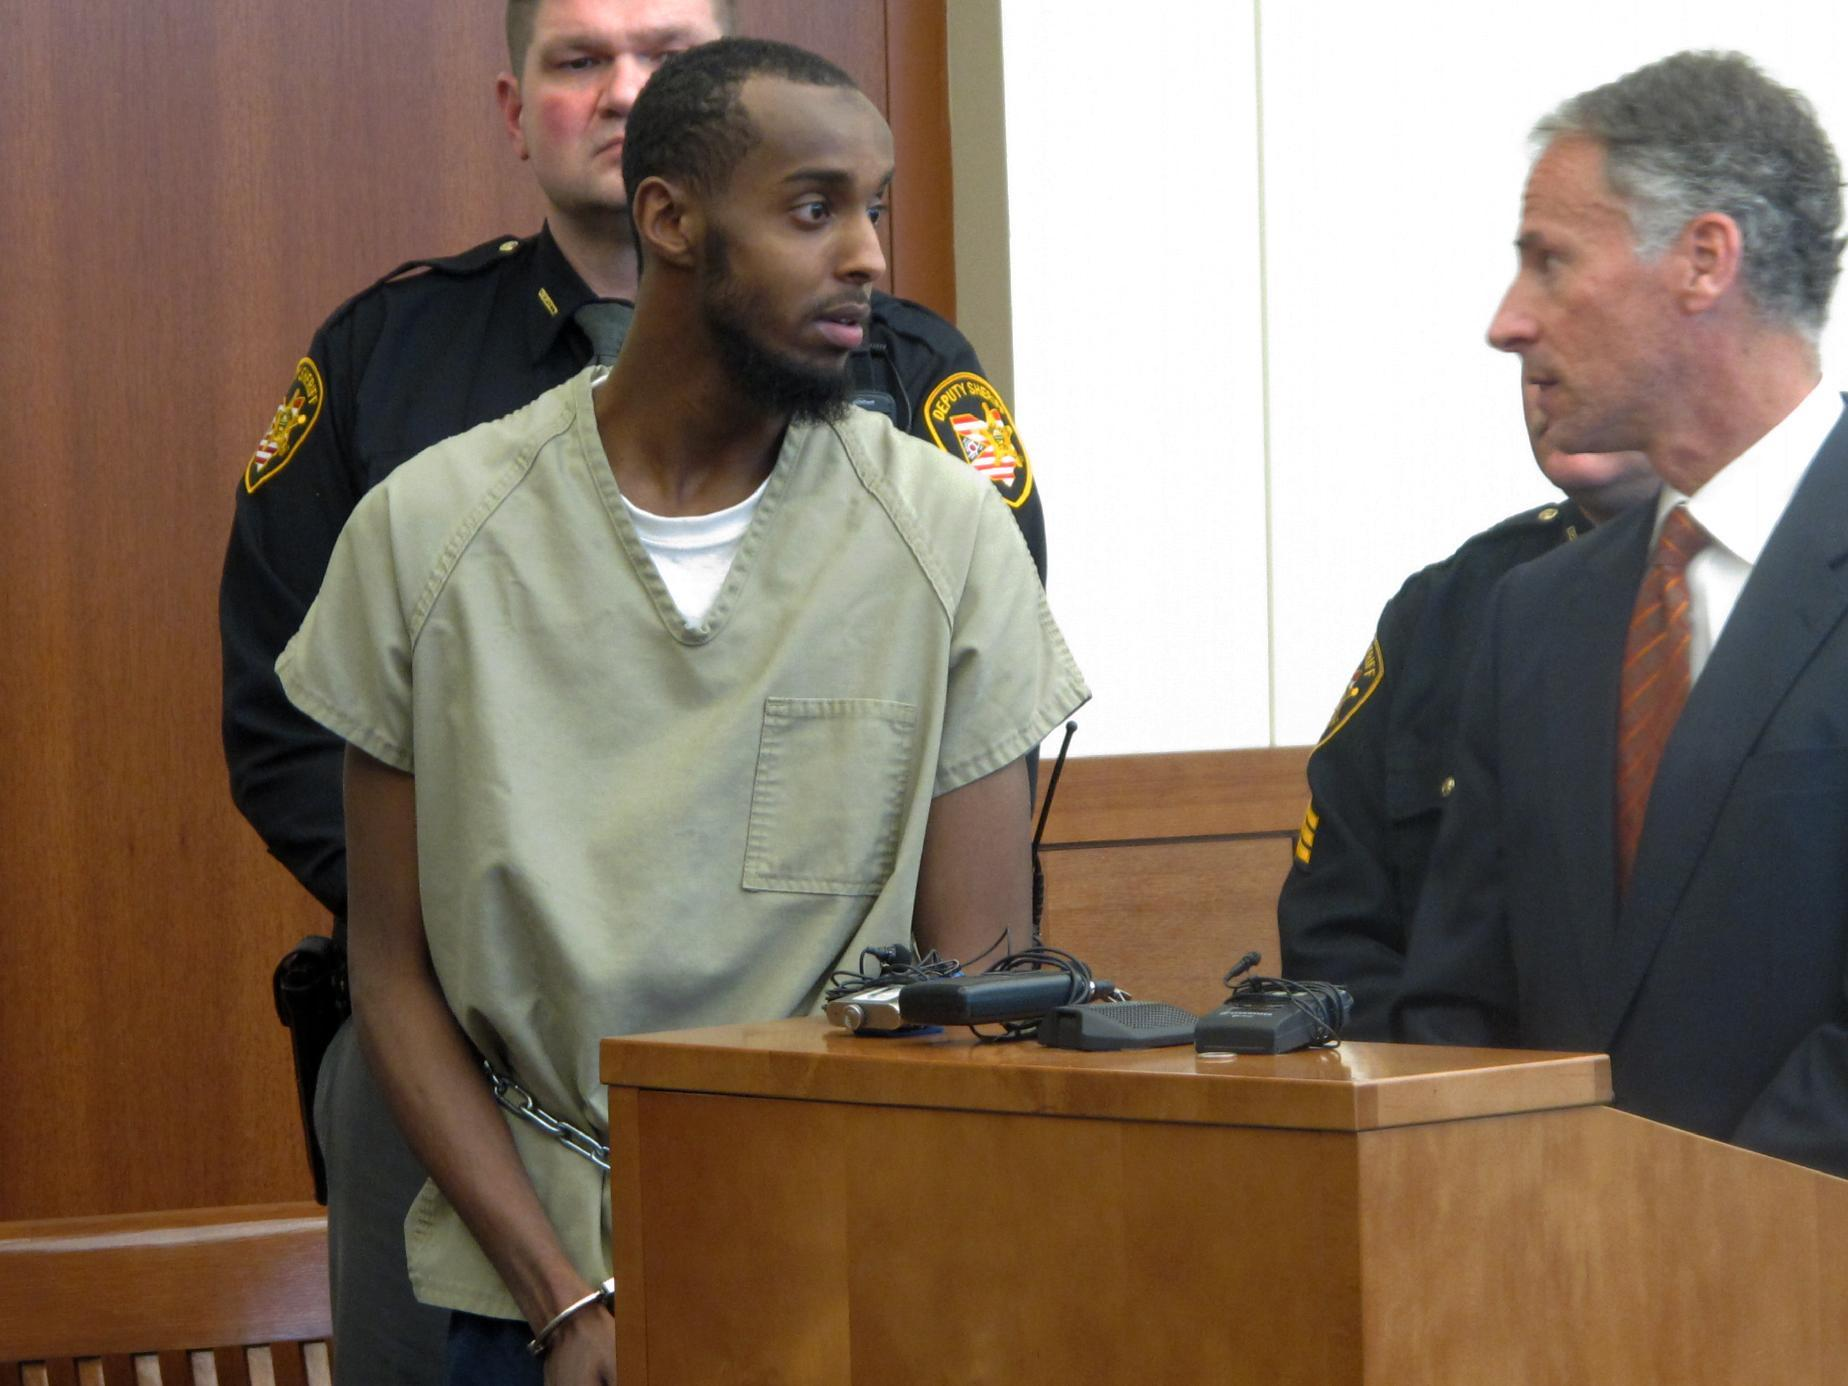 Man accused of giving terrorists tablet denies US charges